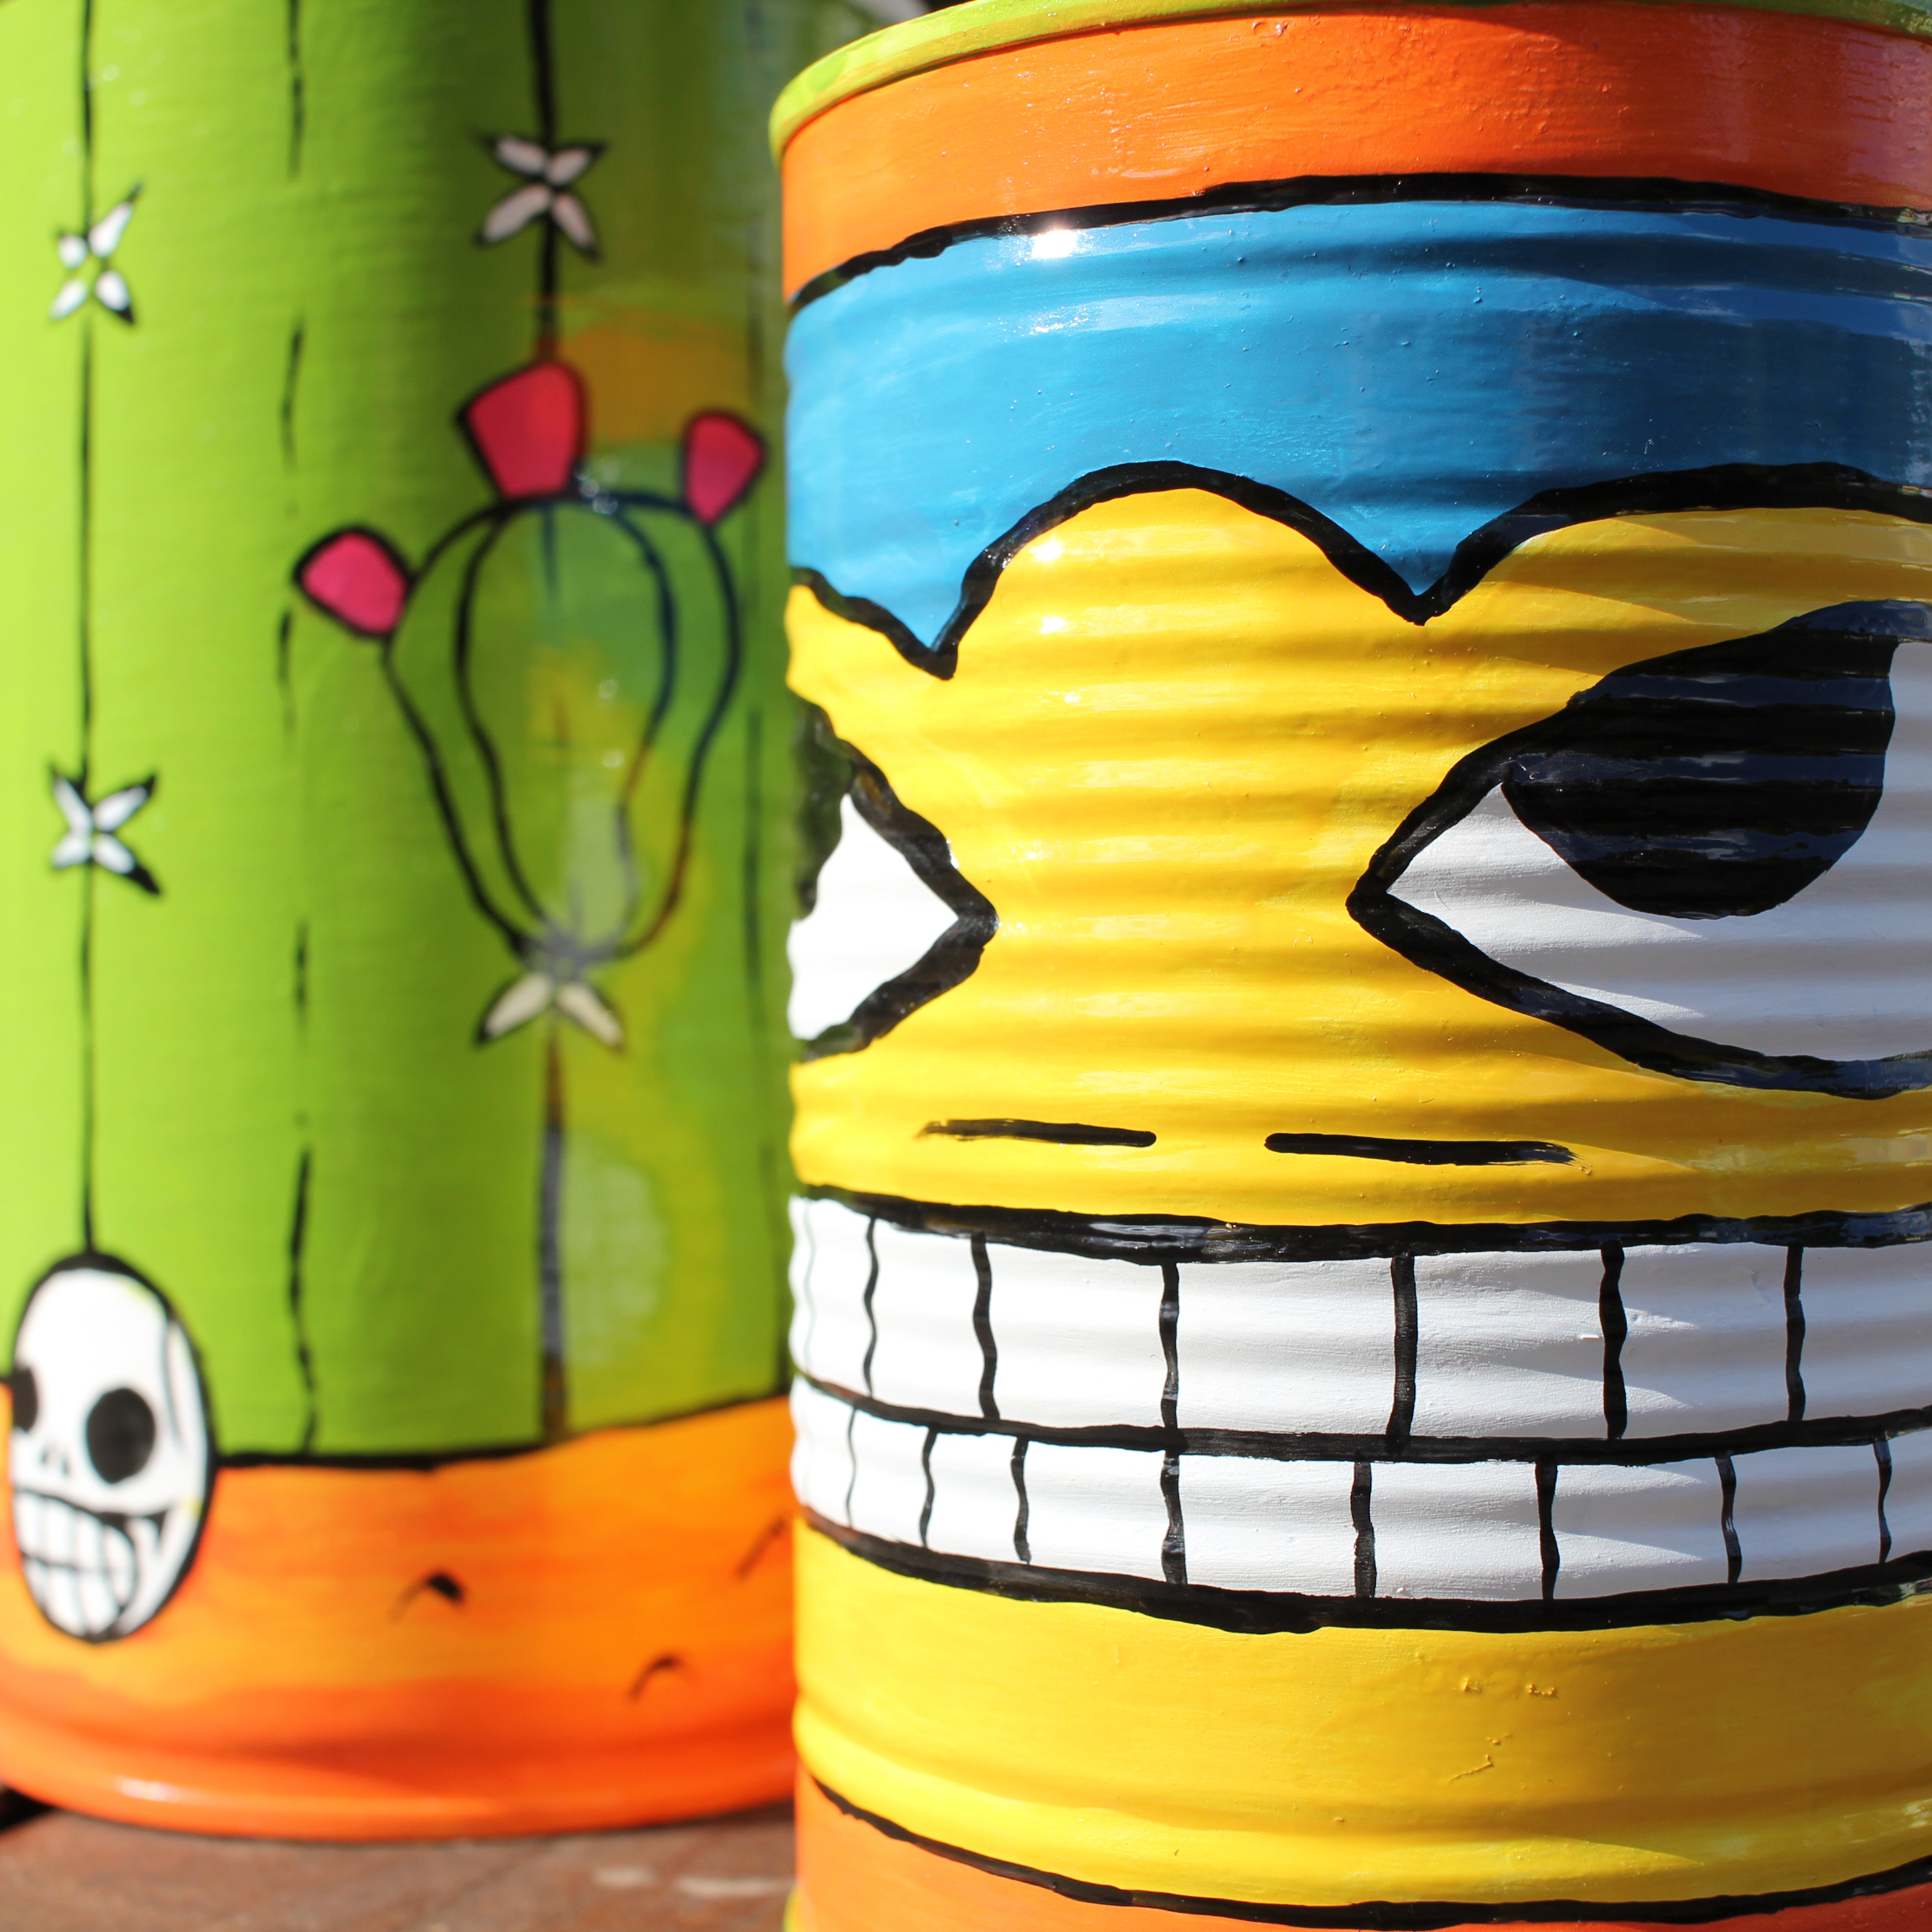 A phot of two tin cans painted in a mexican style using enamel paints. They are very bright. one resembles a mexican wrestler, the other resembles a cactus in the desert with a skull.